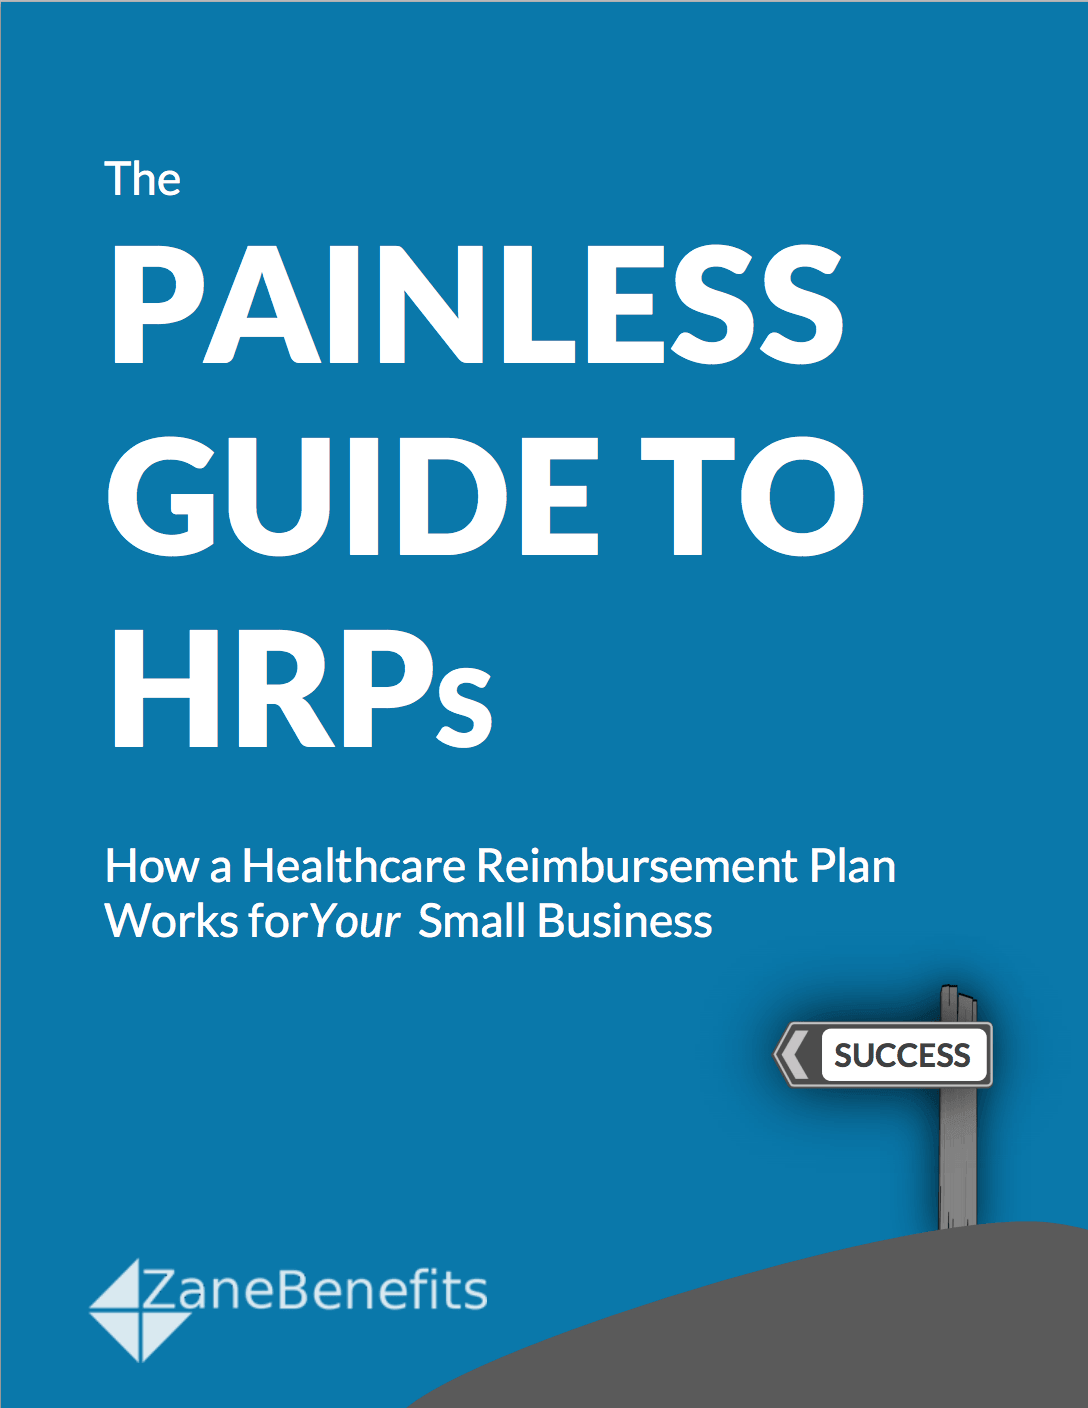 Zane Benefits Guide to Painless HRPs